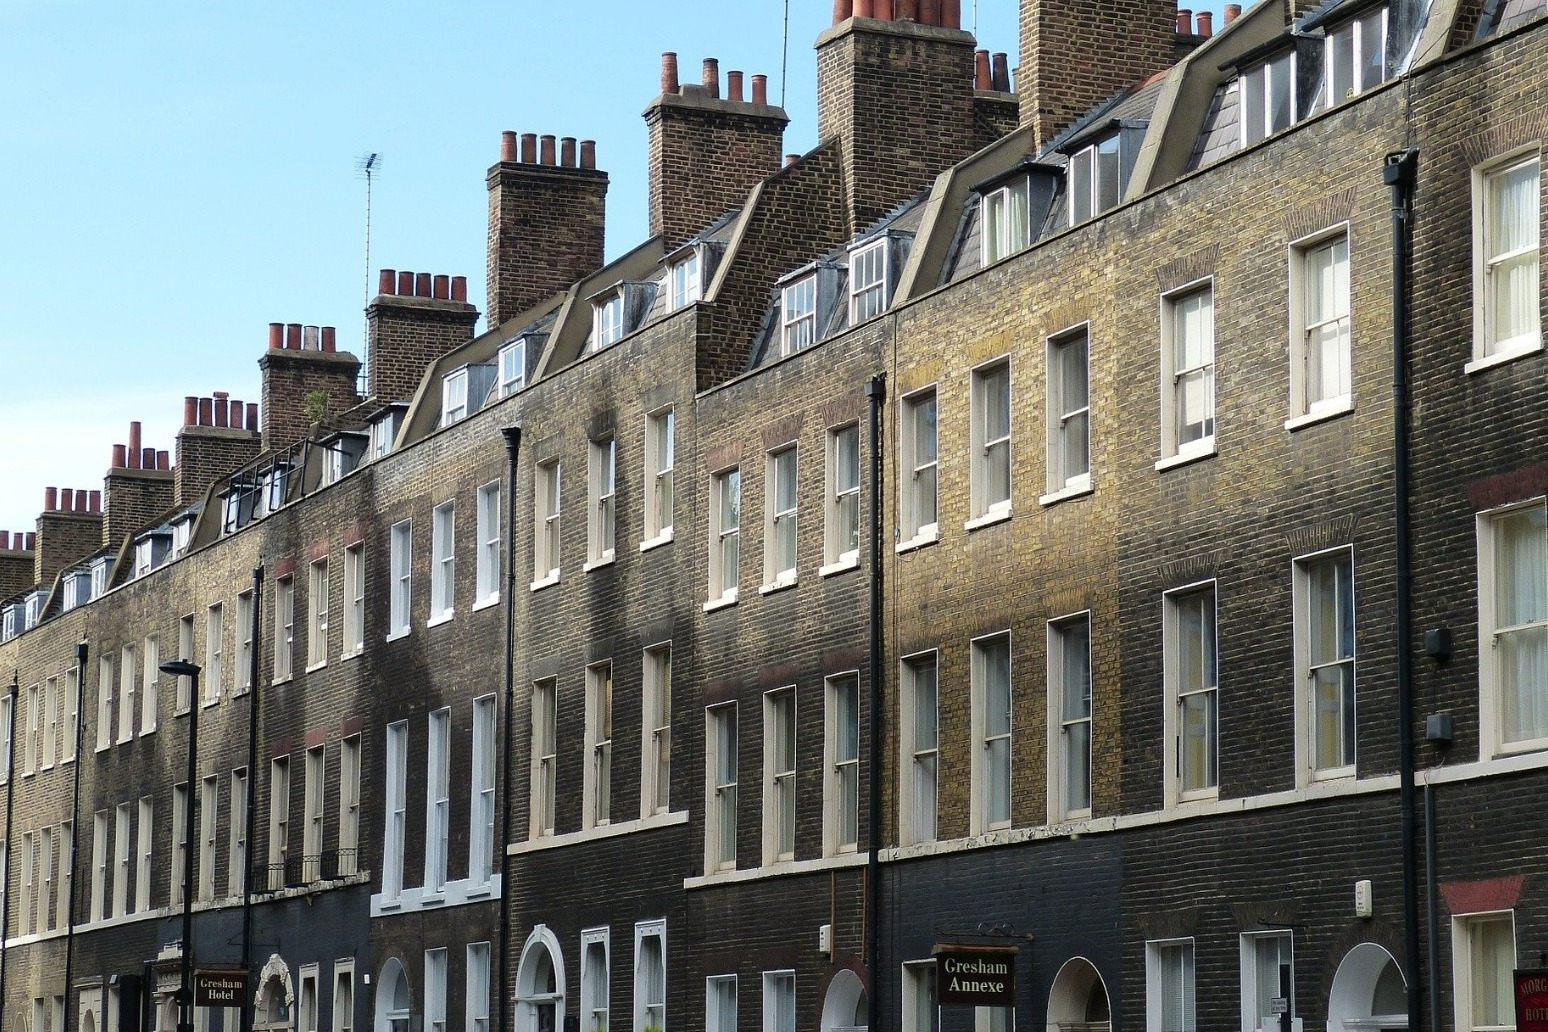 LONDON HOUSING MARKET \'SHOWING SIGNS OF LIFE\' AS PROPERTY PRICES INCREASE